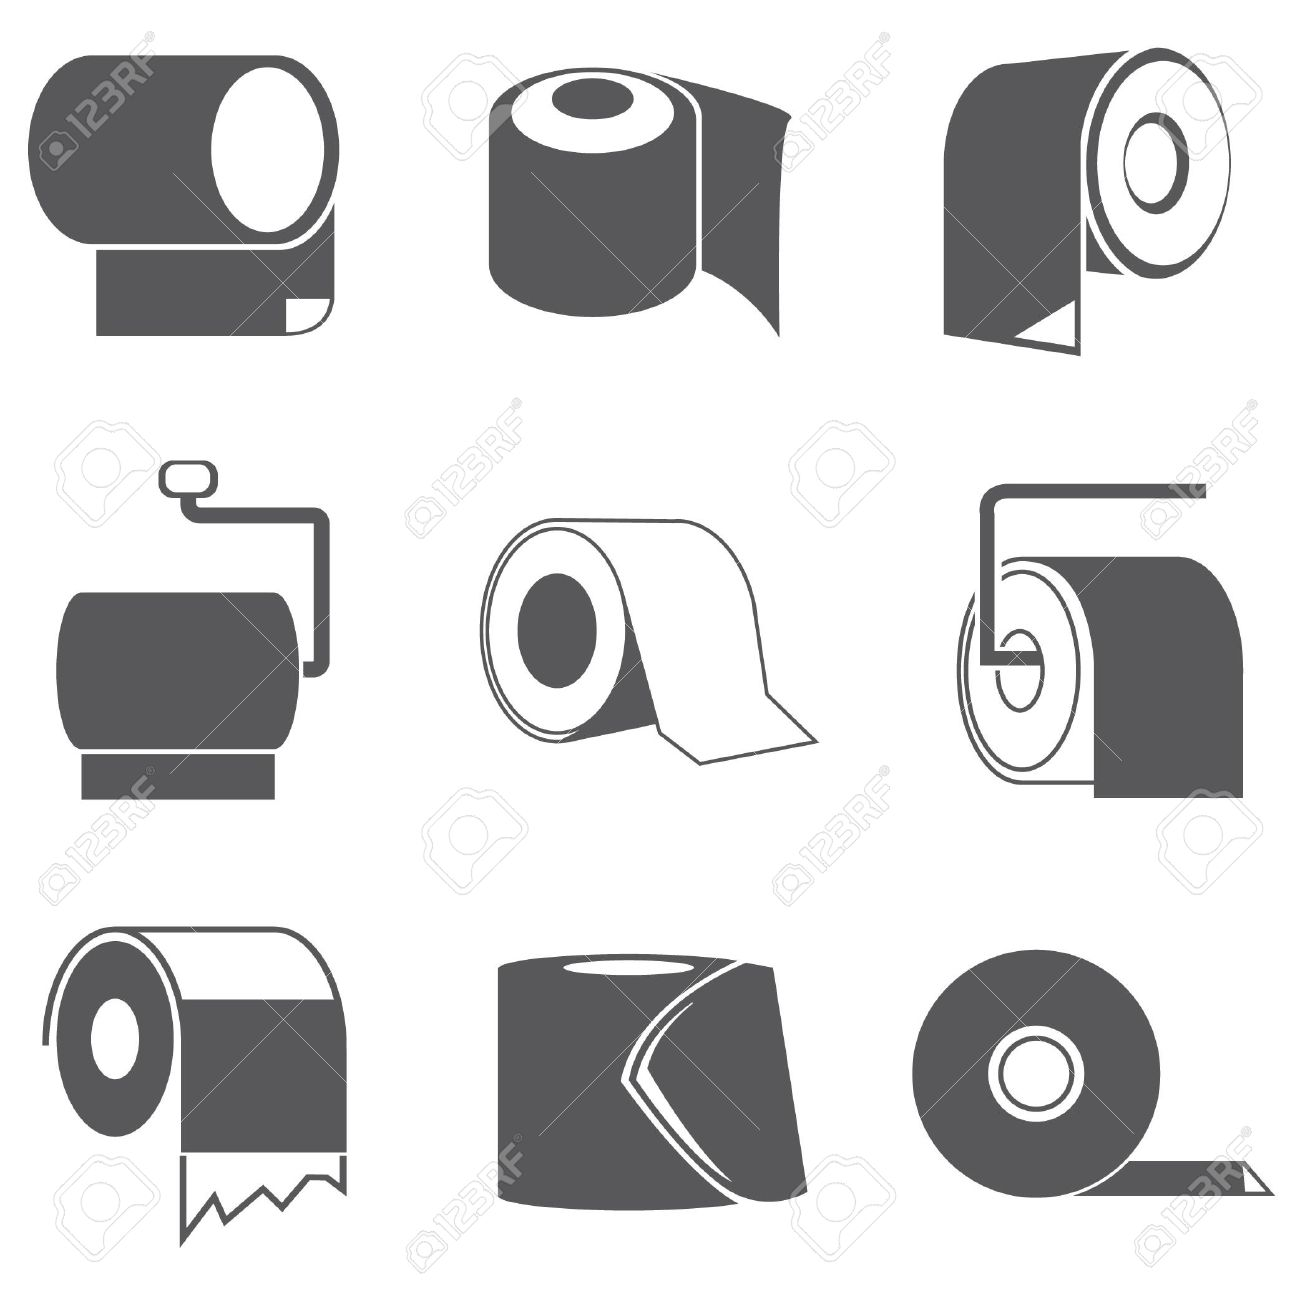 Vector   toilet paper roll icons. Toilet Paper Roll Icons Royalty Free Cliparts  Vectors  And Stock